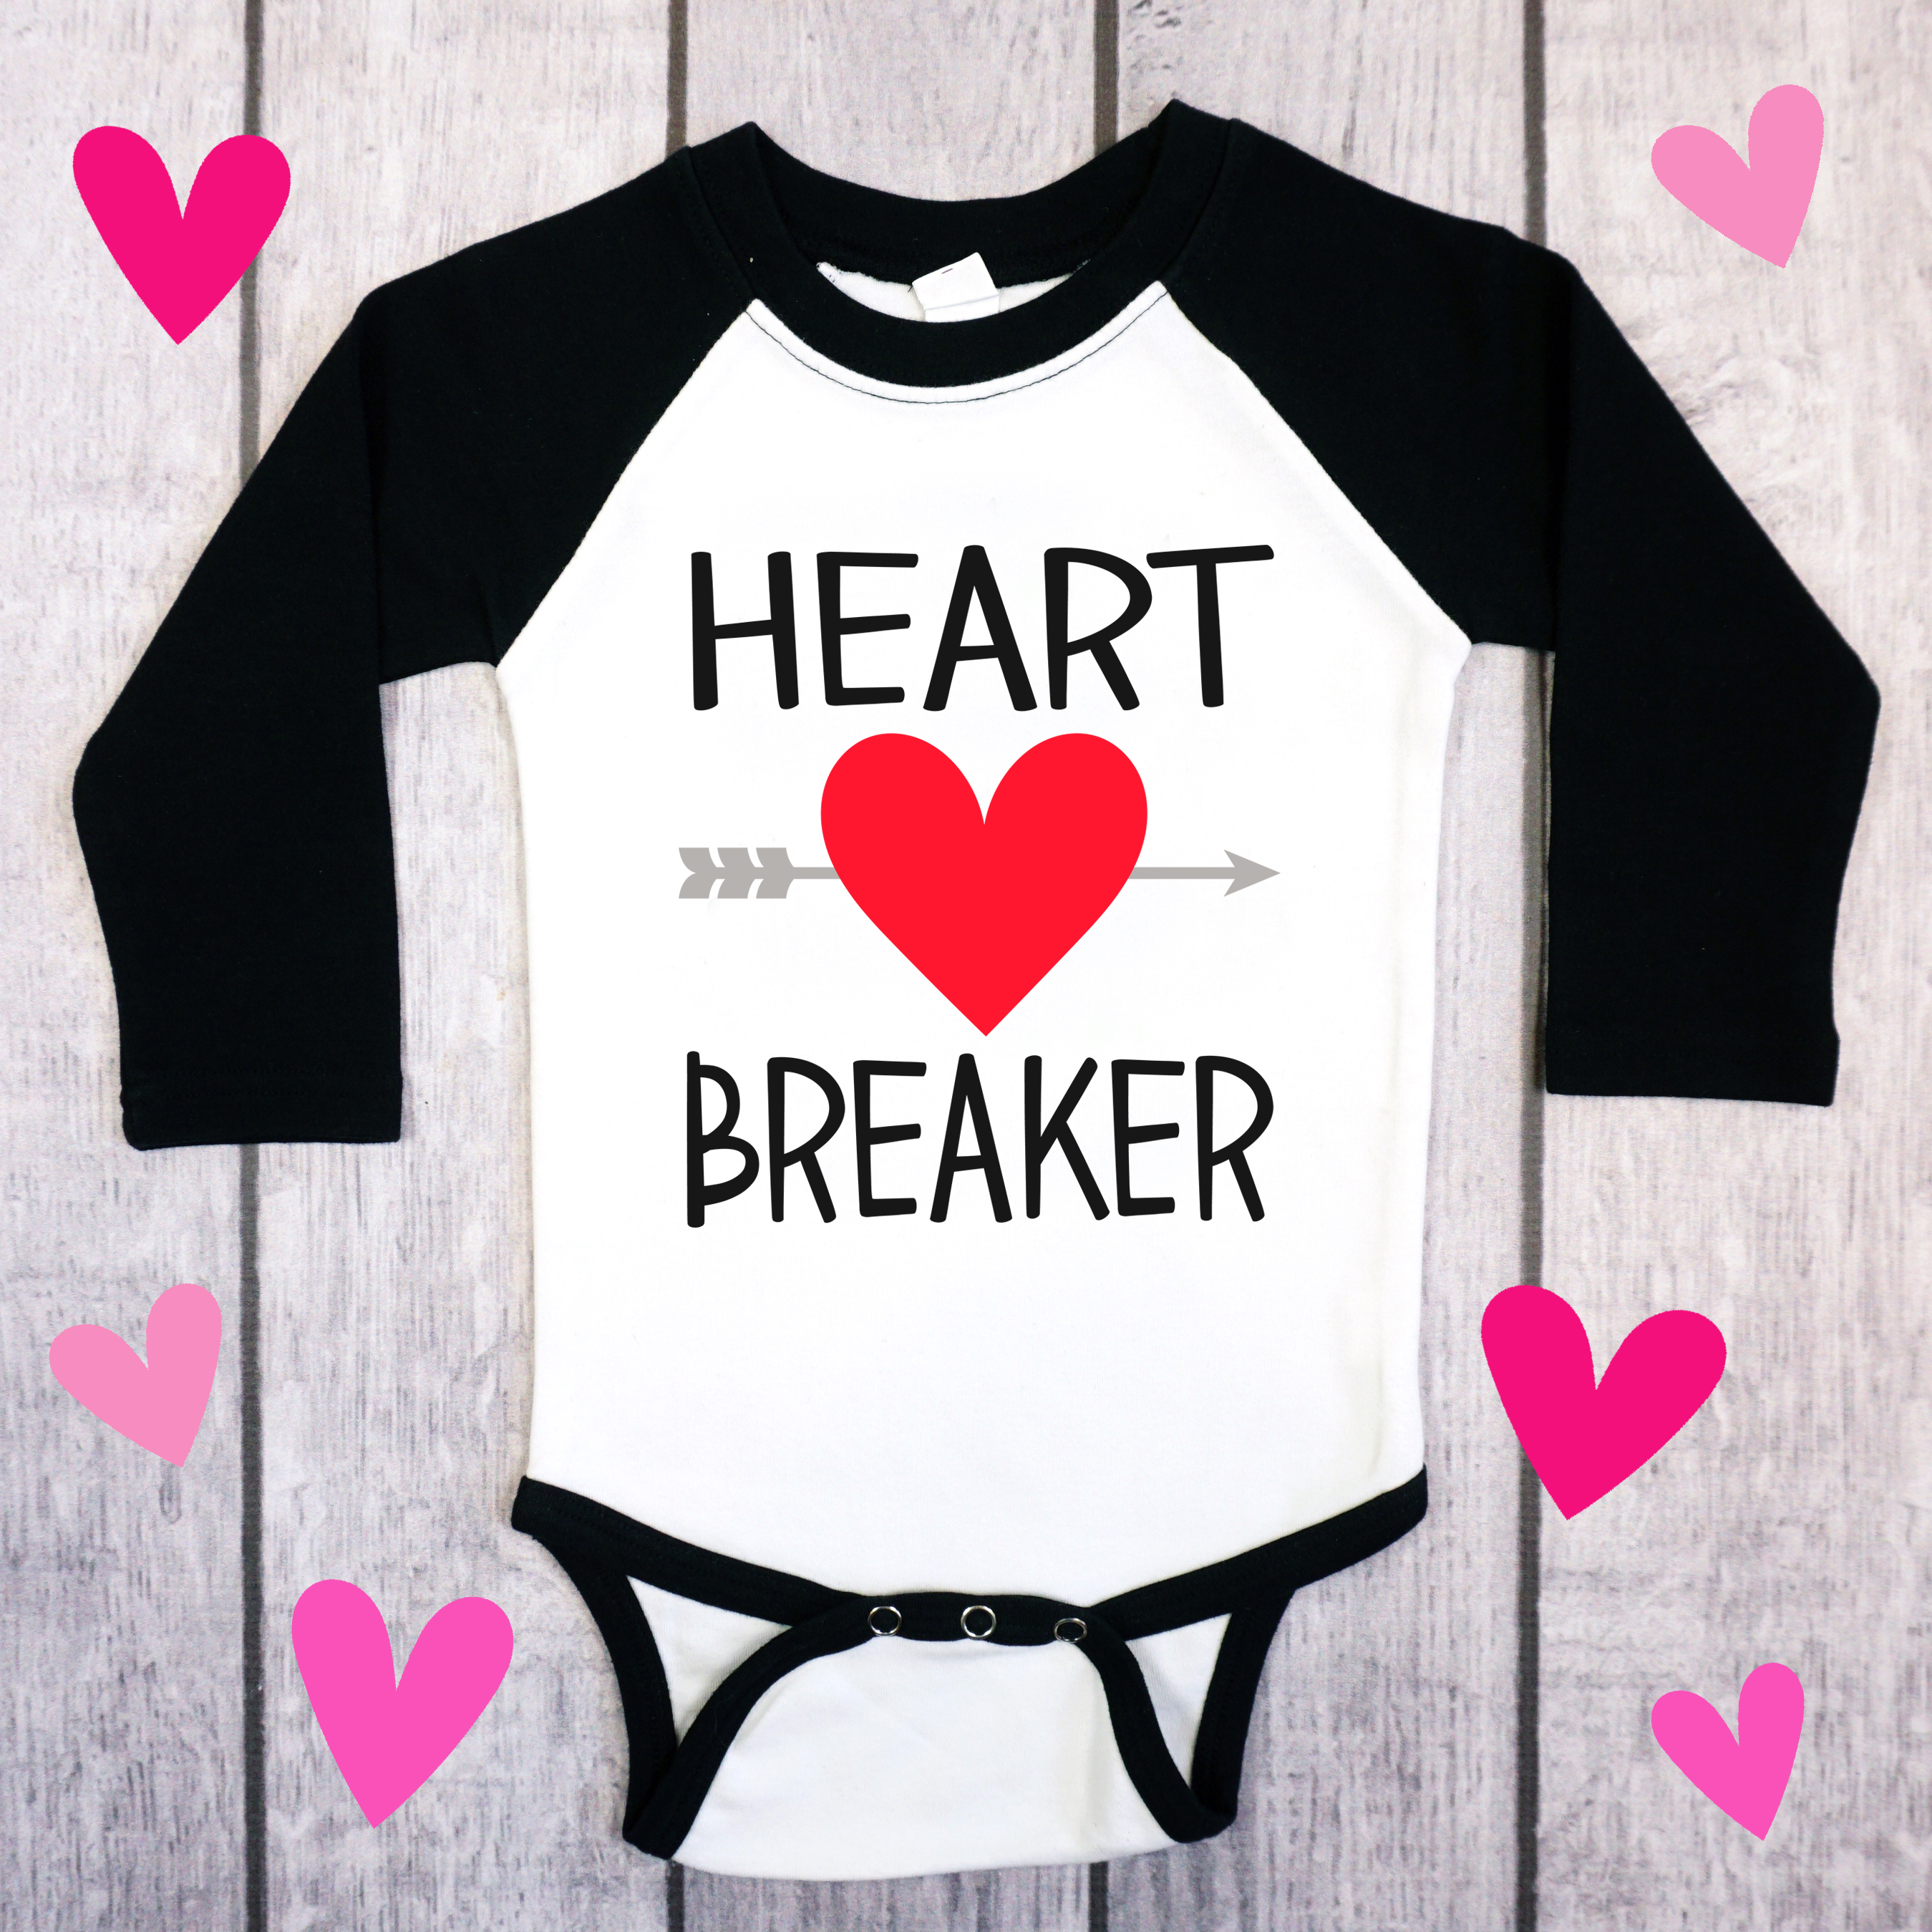 Free Valentine S Day Svgs Heart Breaker Shirt